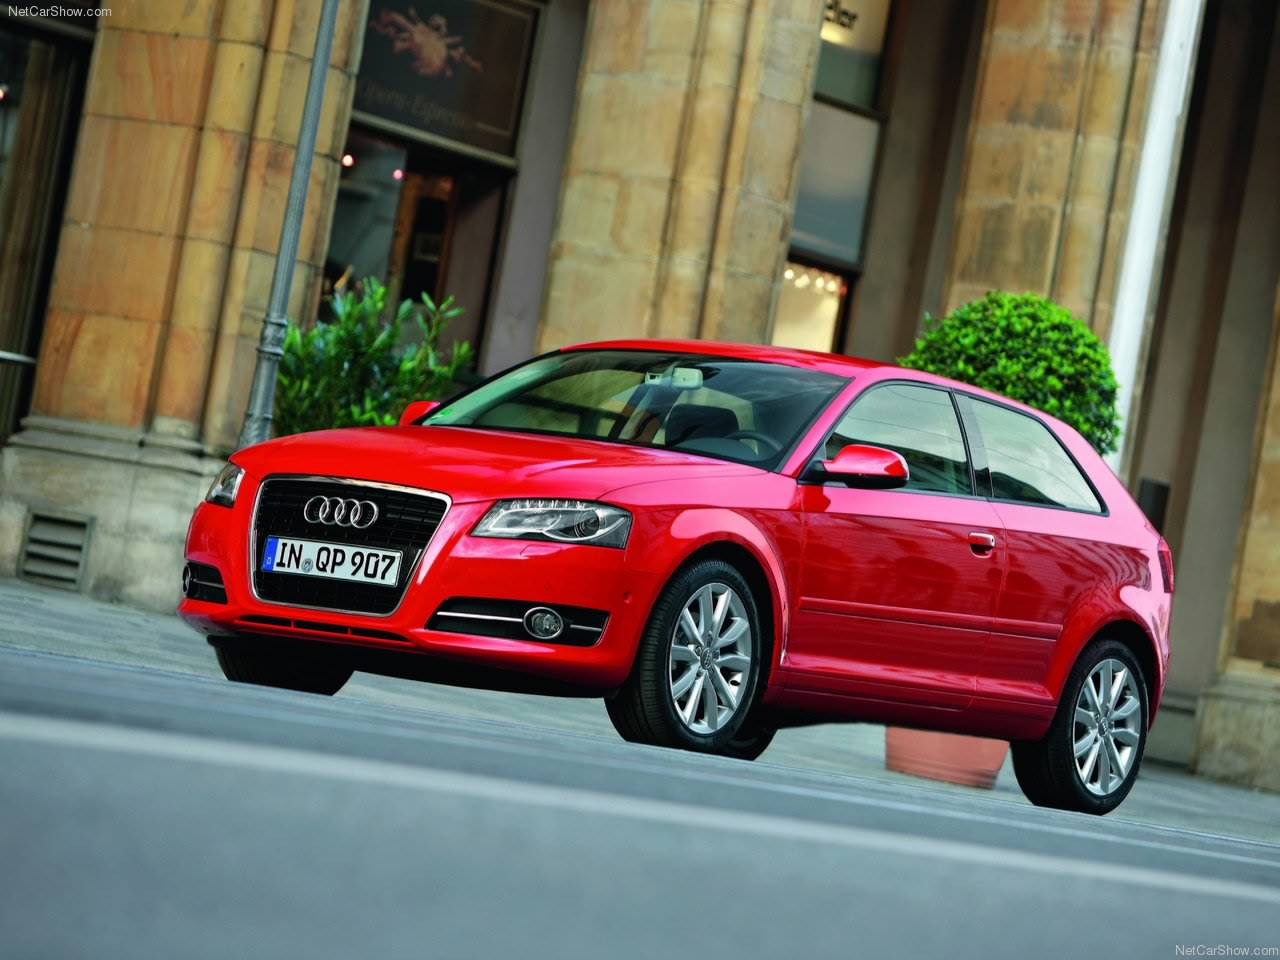 audi a3 wallpaper 1366x768 new hd wallon. Black Bedroom Furniture Sets. Home Design Ideas